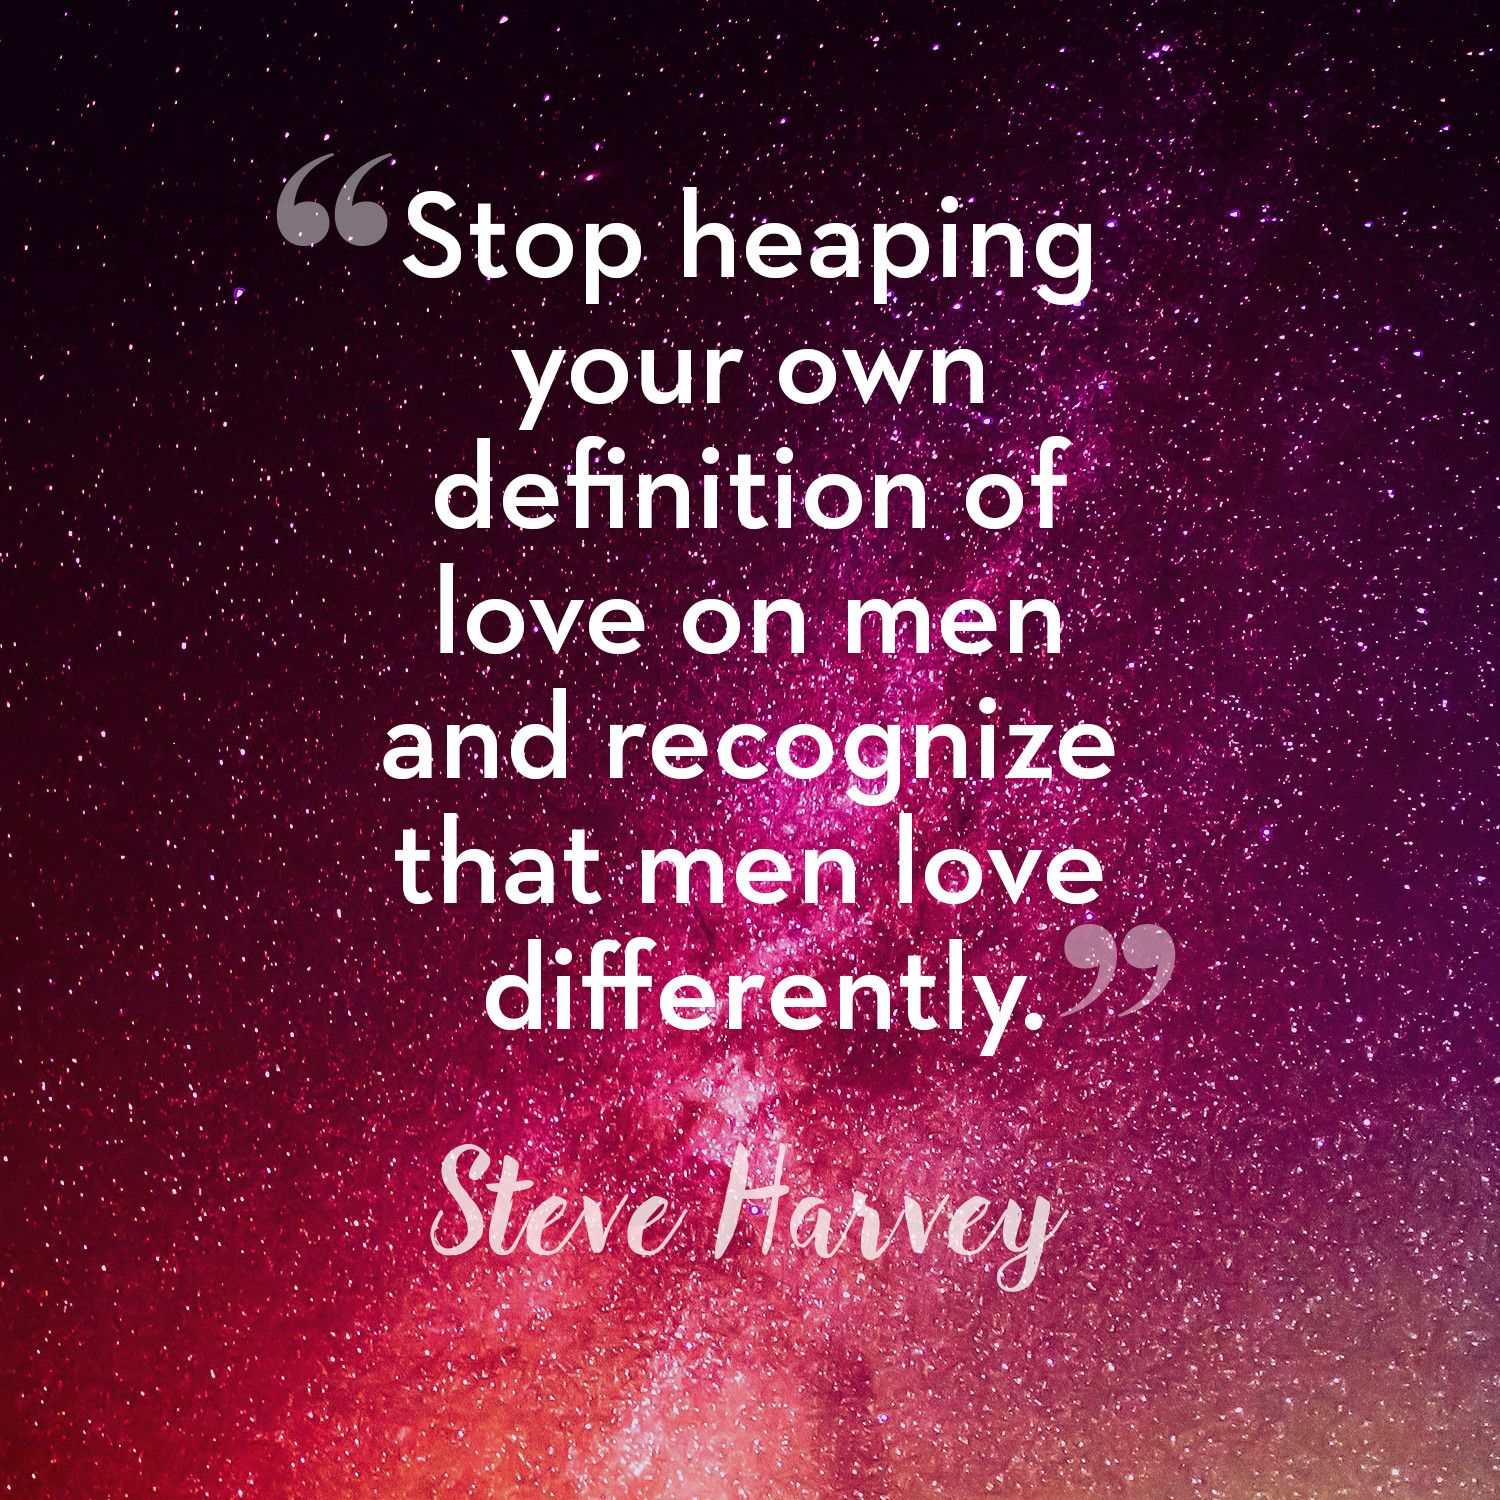 50 Best Relationship Quotes From Steve Harvey - Steve Harvey